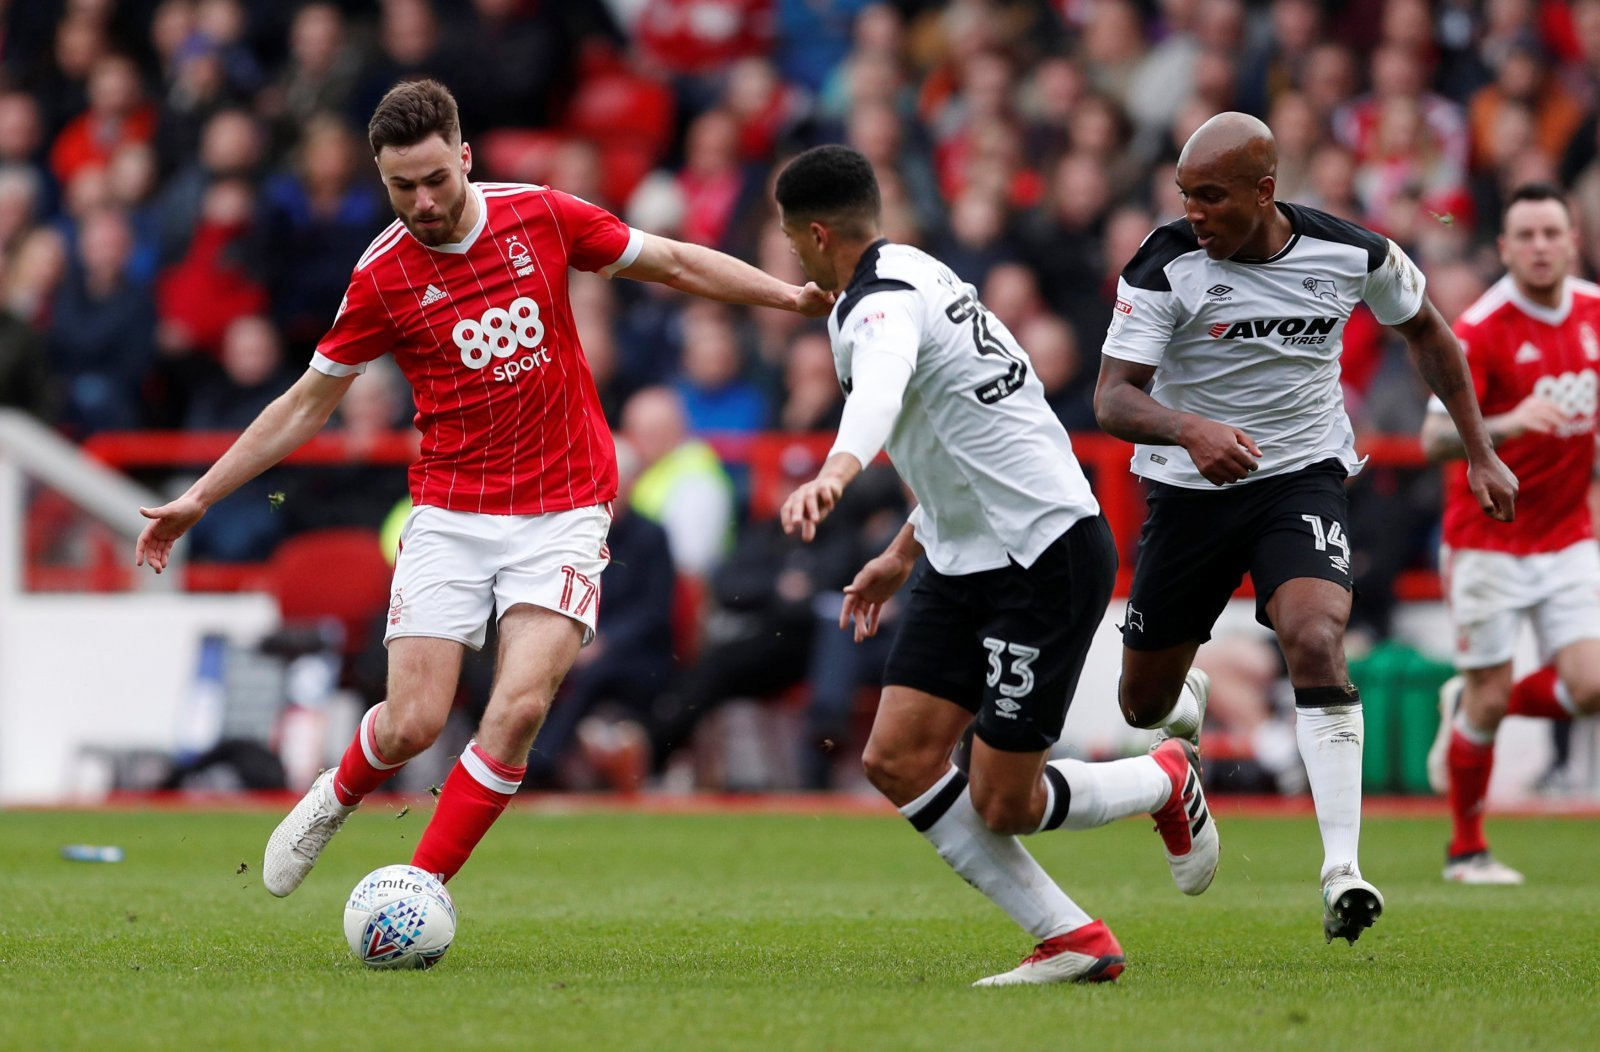 Brereton should be of strong interest to Liverpool